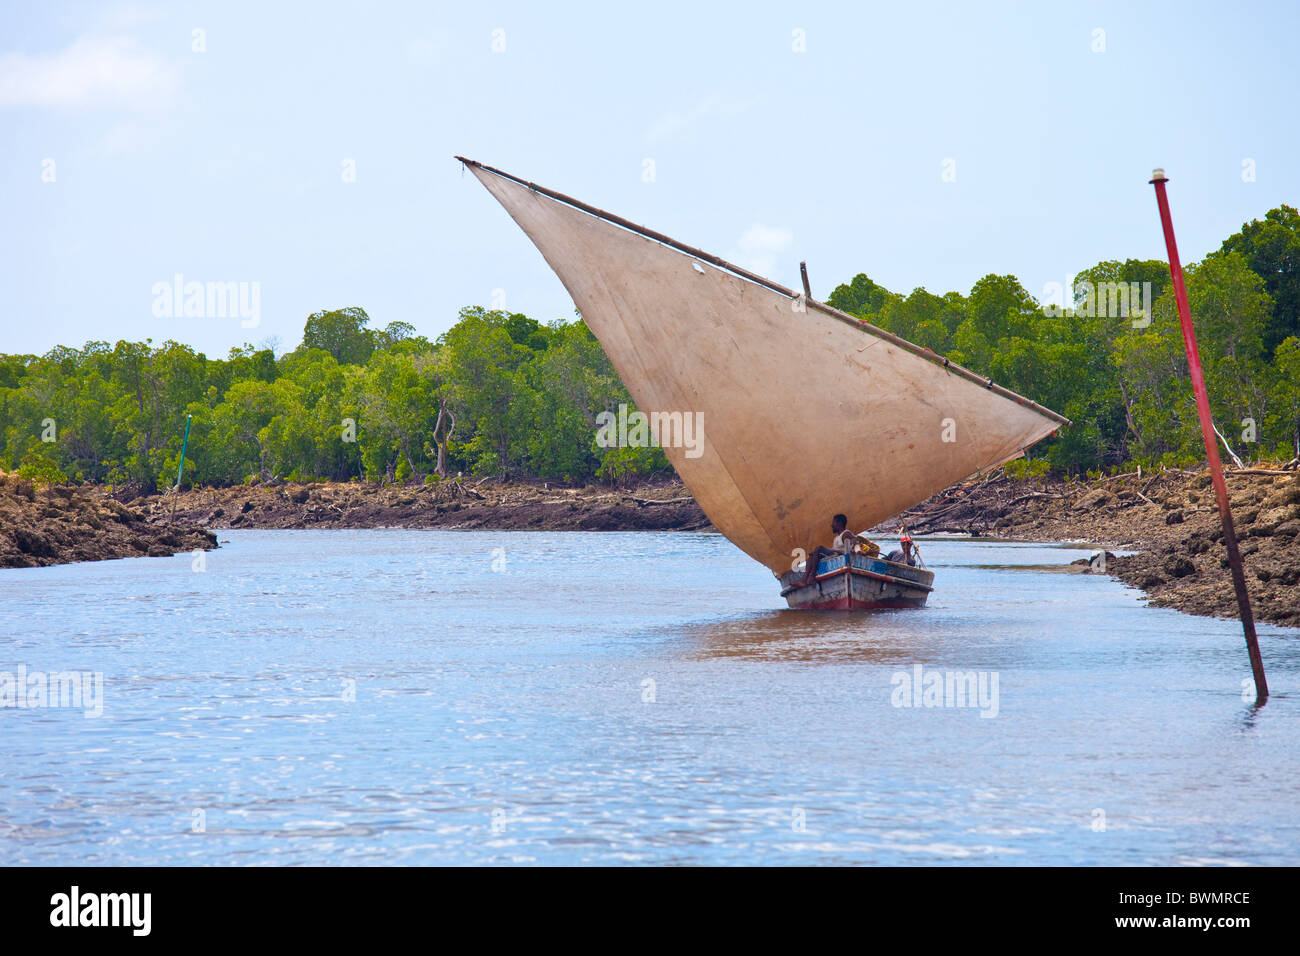 Dhow sailing in a channel off of Lamu Island, Kenya - Stock Image